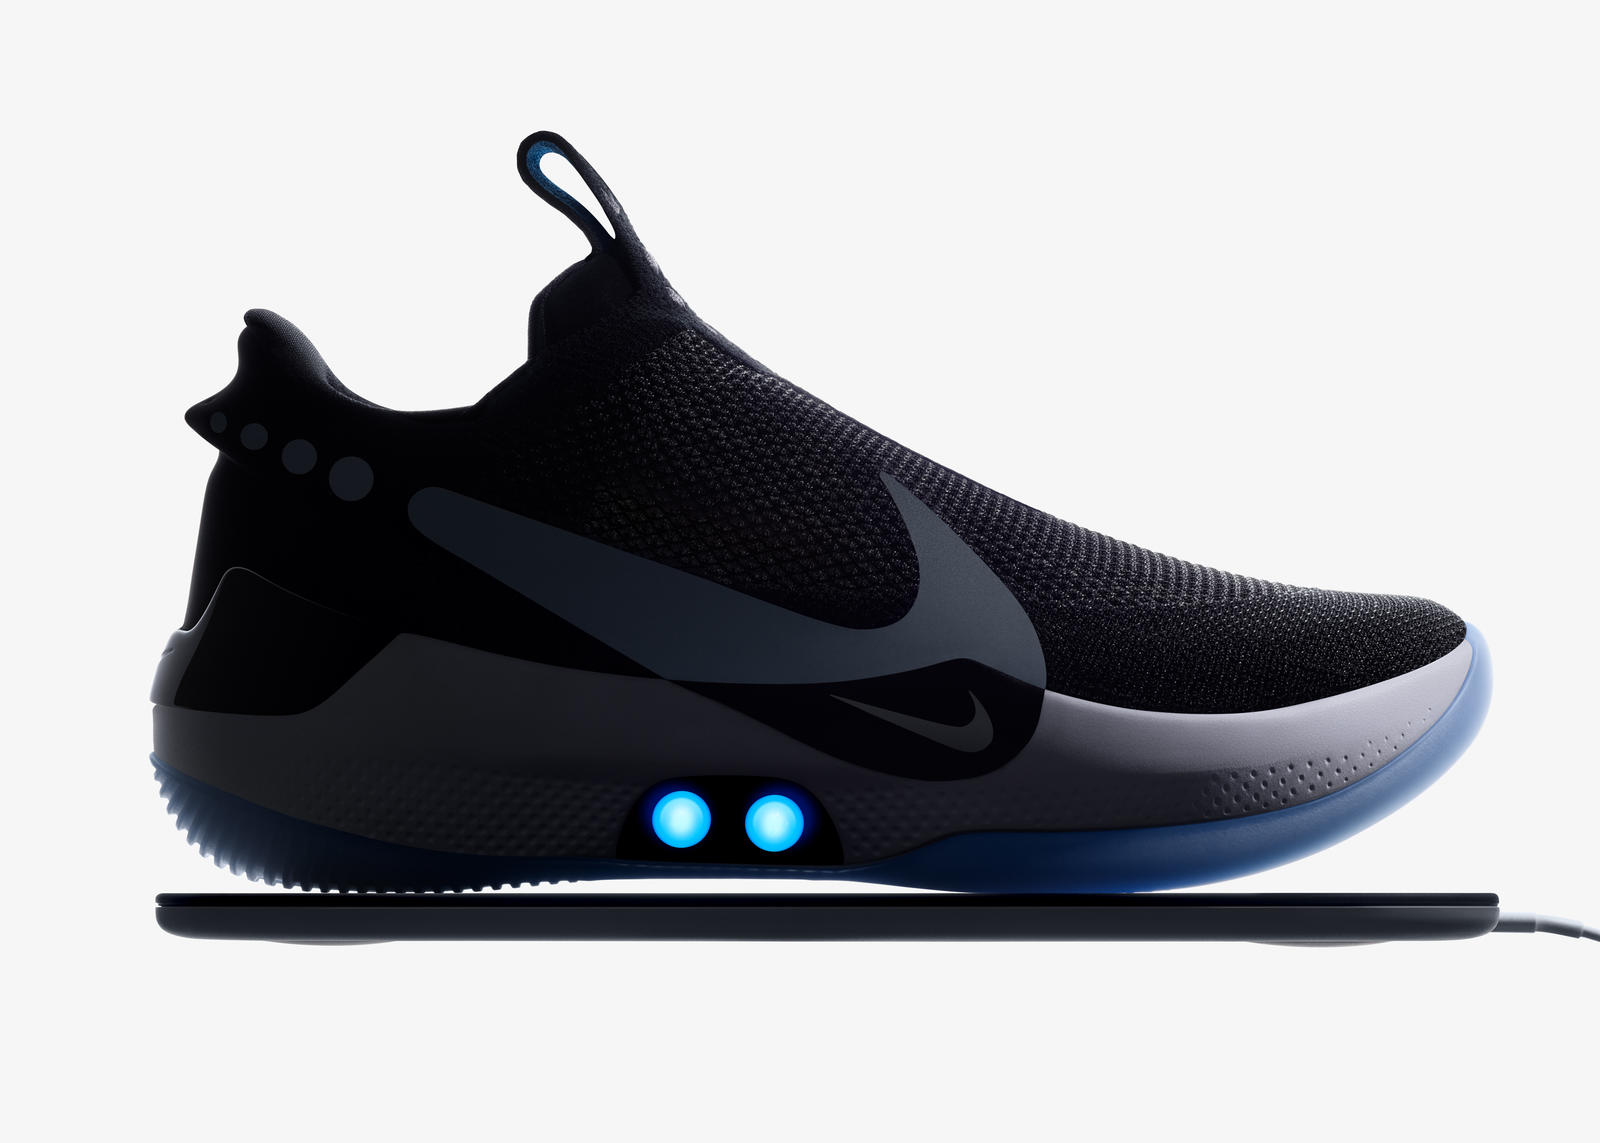 reputable site da67e 36e3c Introducing the Nike Adapt BB - Nike News